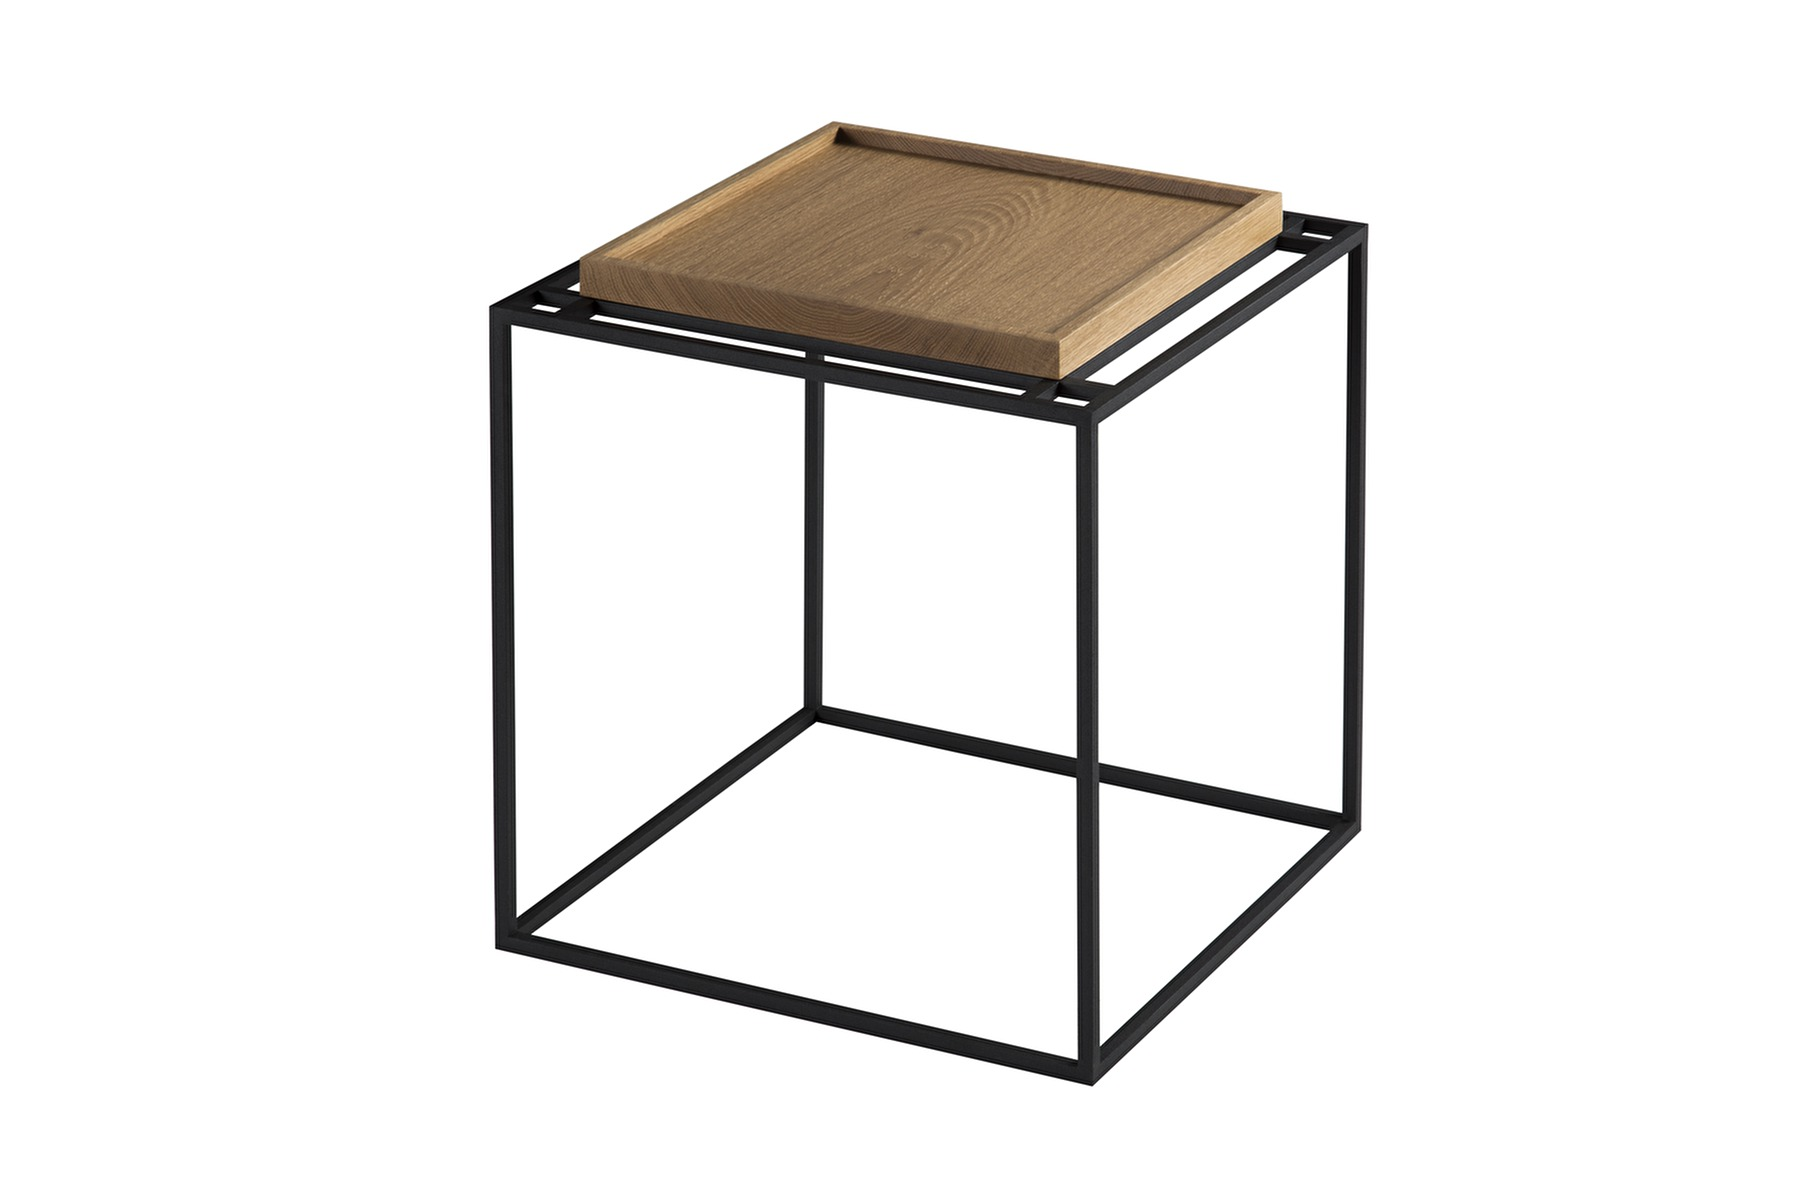 Tray Coffee Table Side Table Tray Elensen Home Design